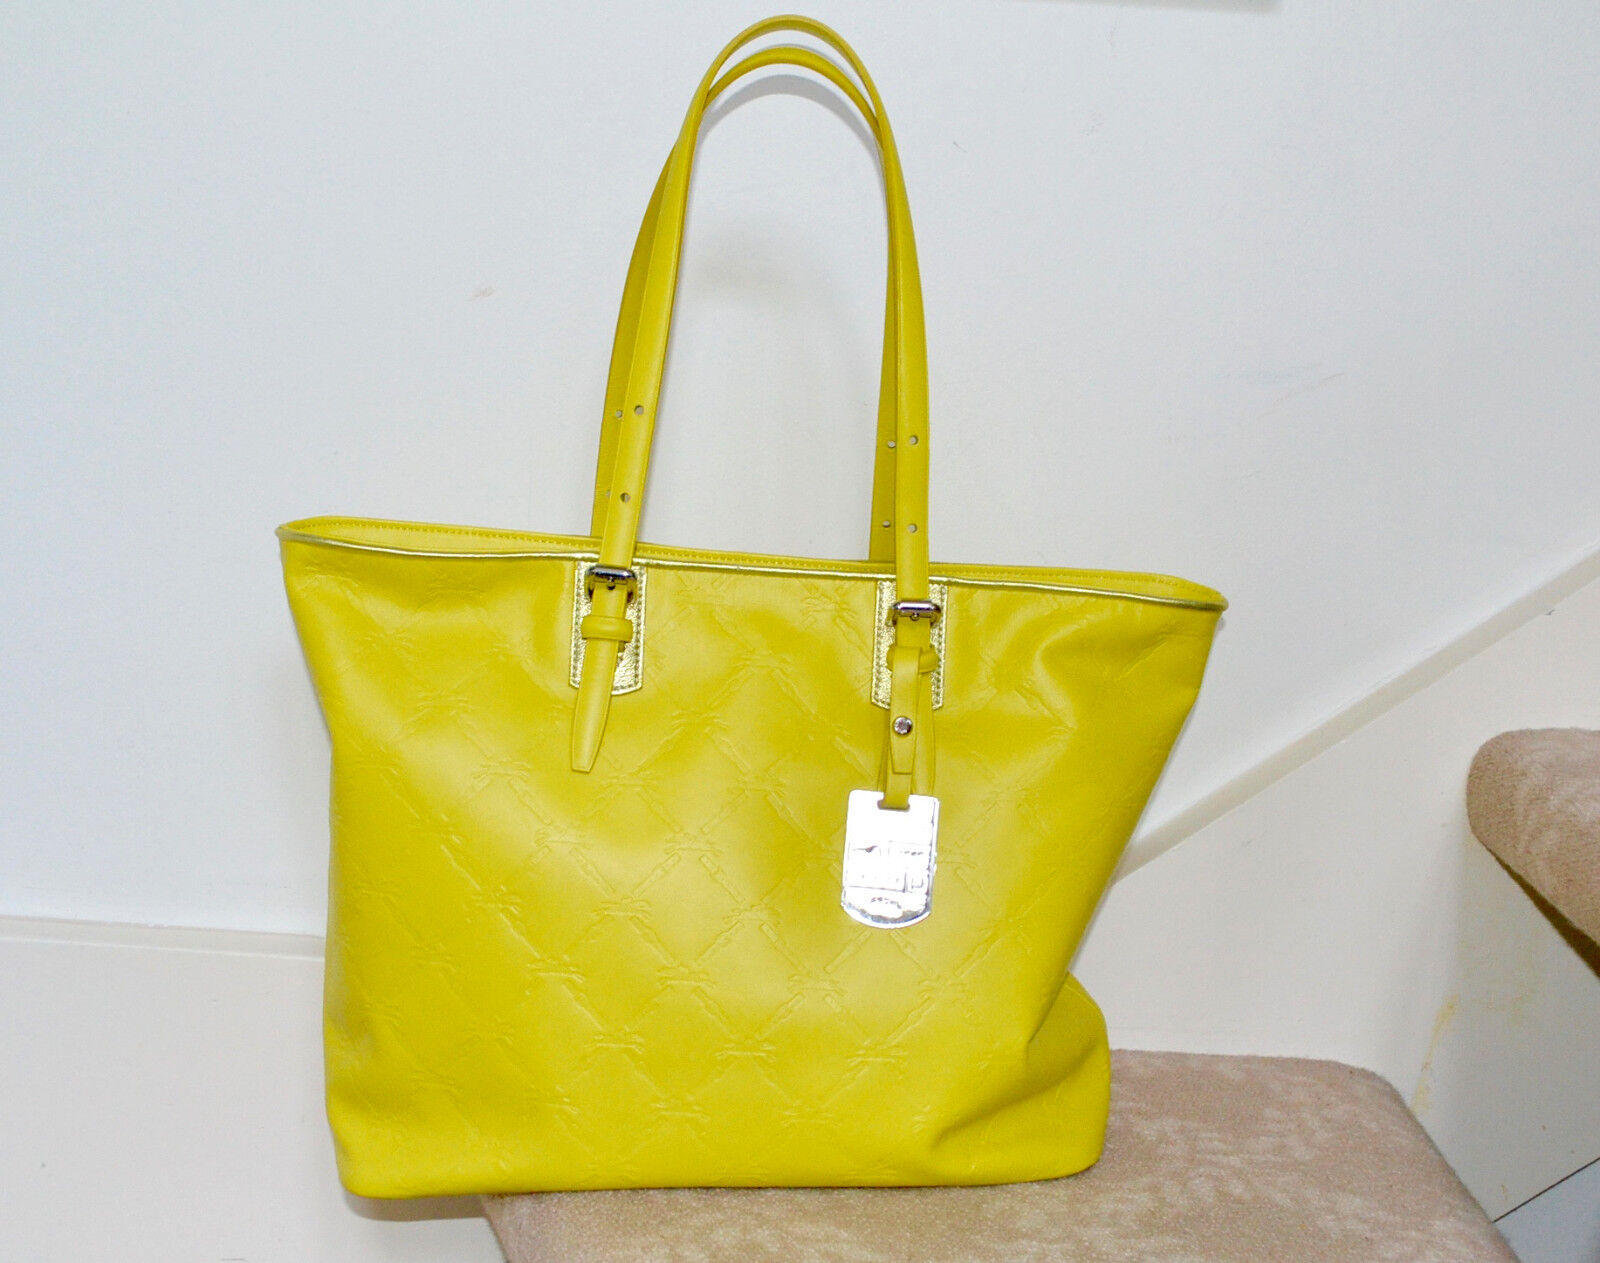 New $675 Authentic Longchamp LM Cuir Lemon Zip Shoulder Tote Bag Medium